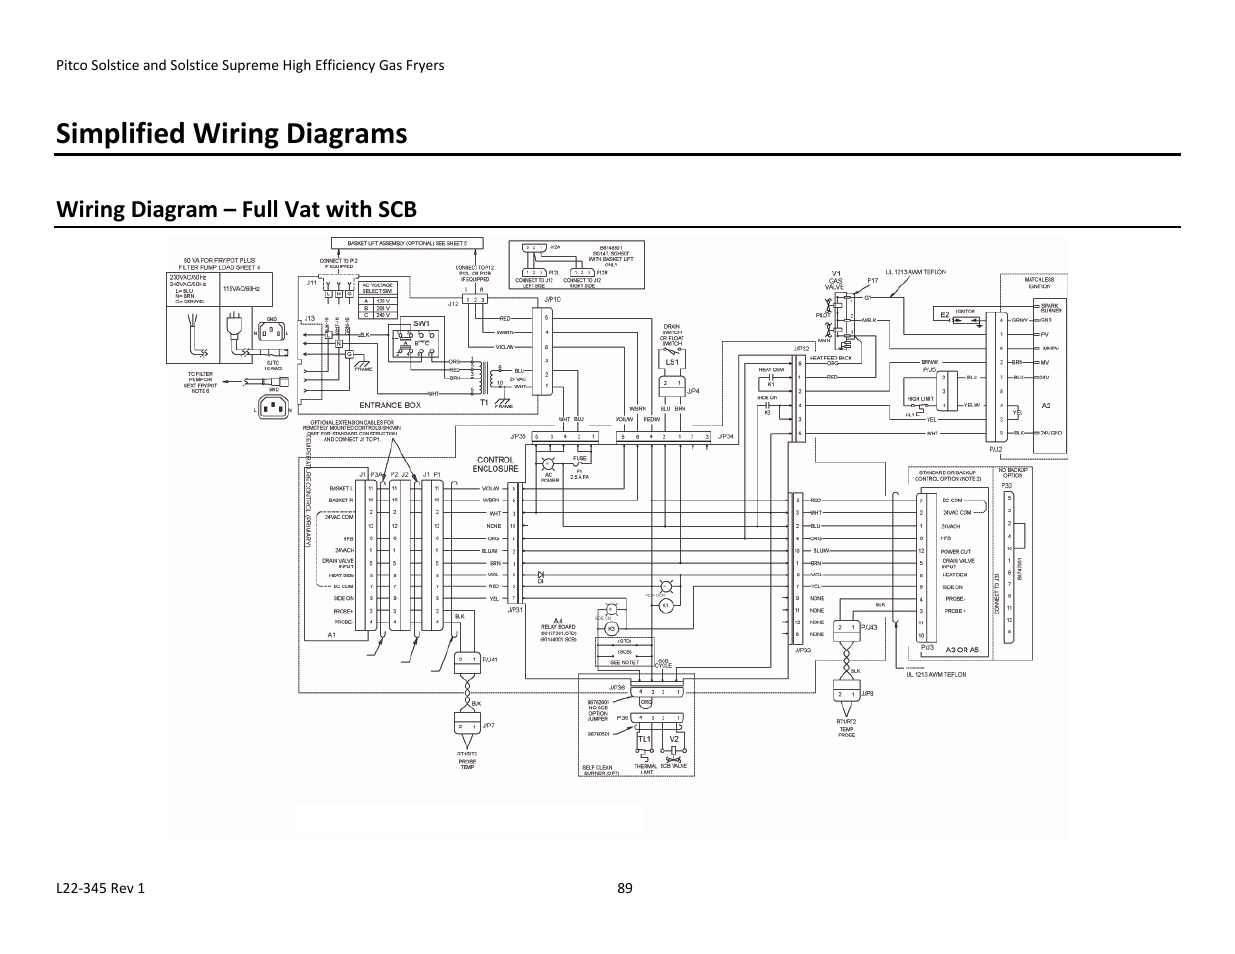 simplified wiring diagrams  wiring diagram  u2013 full vat with scb